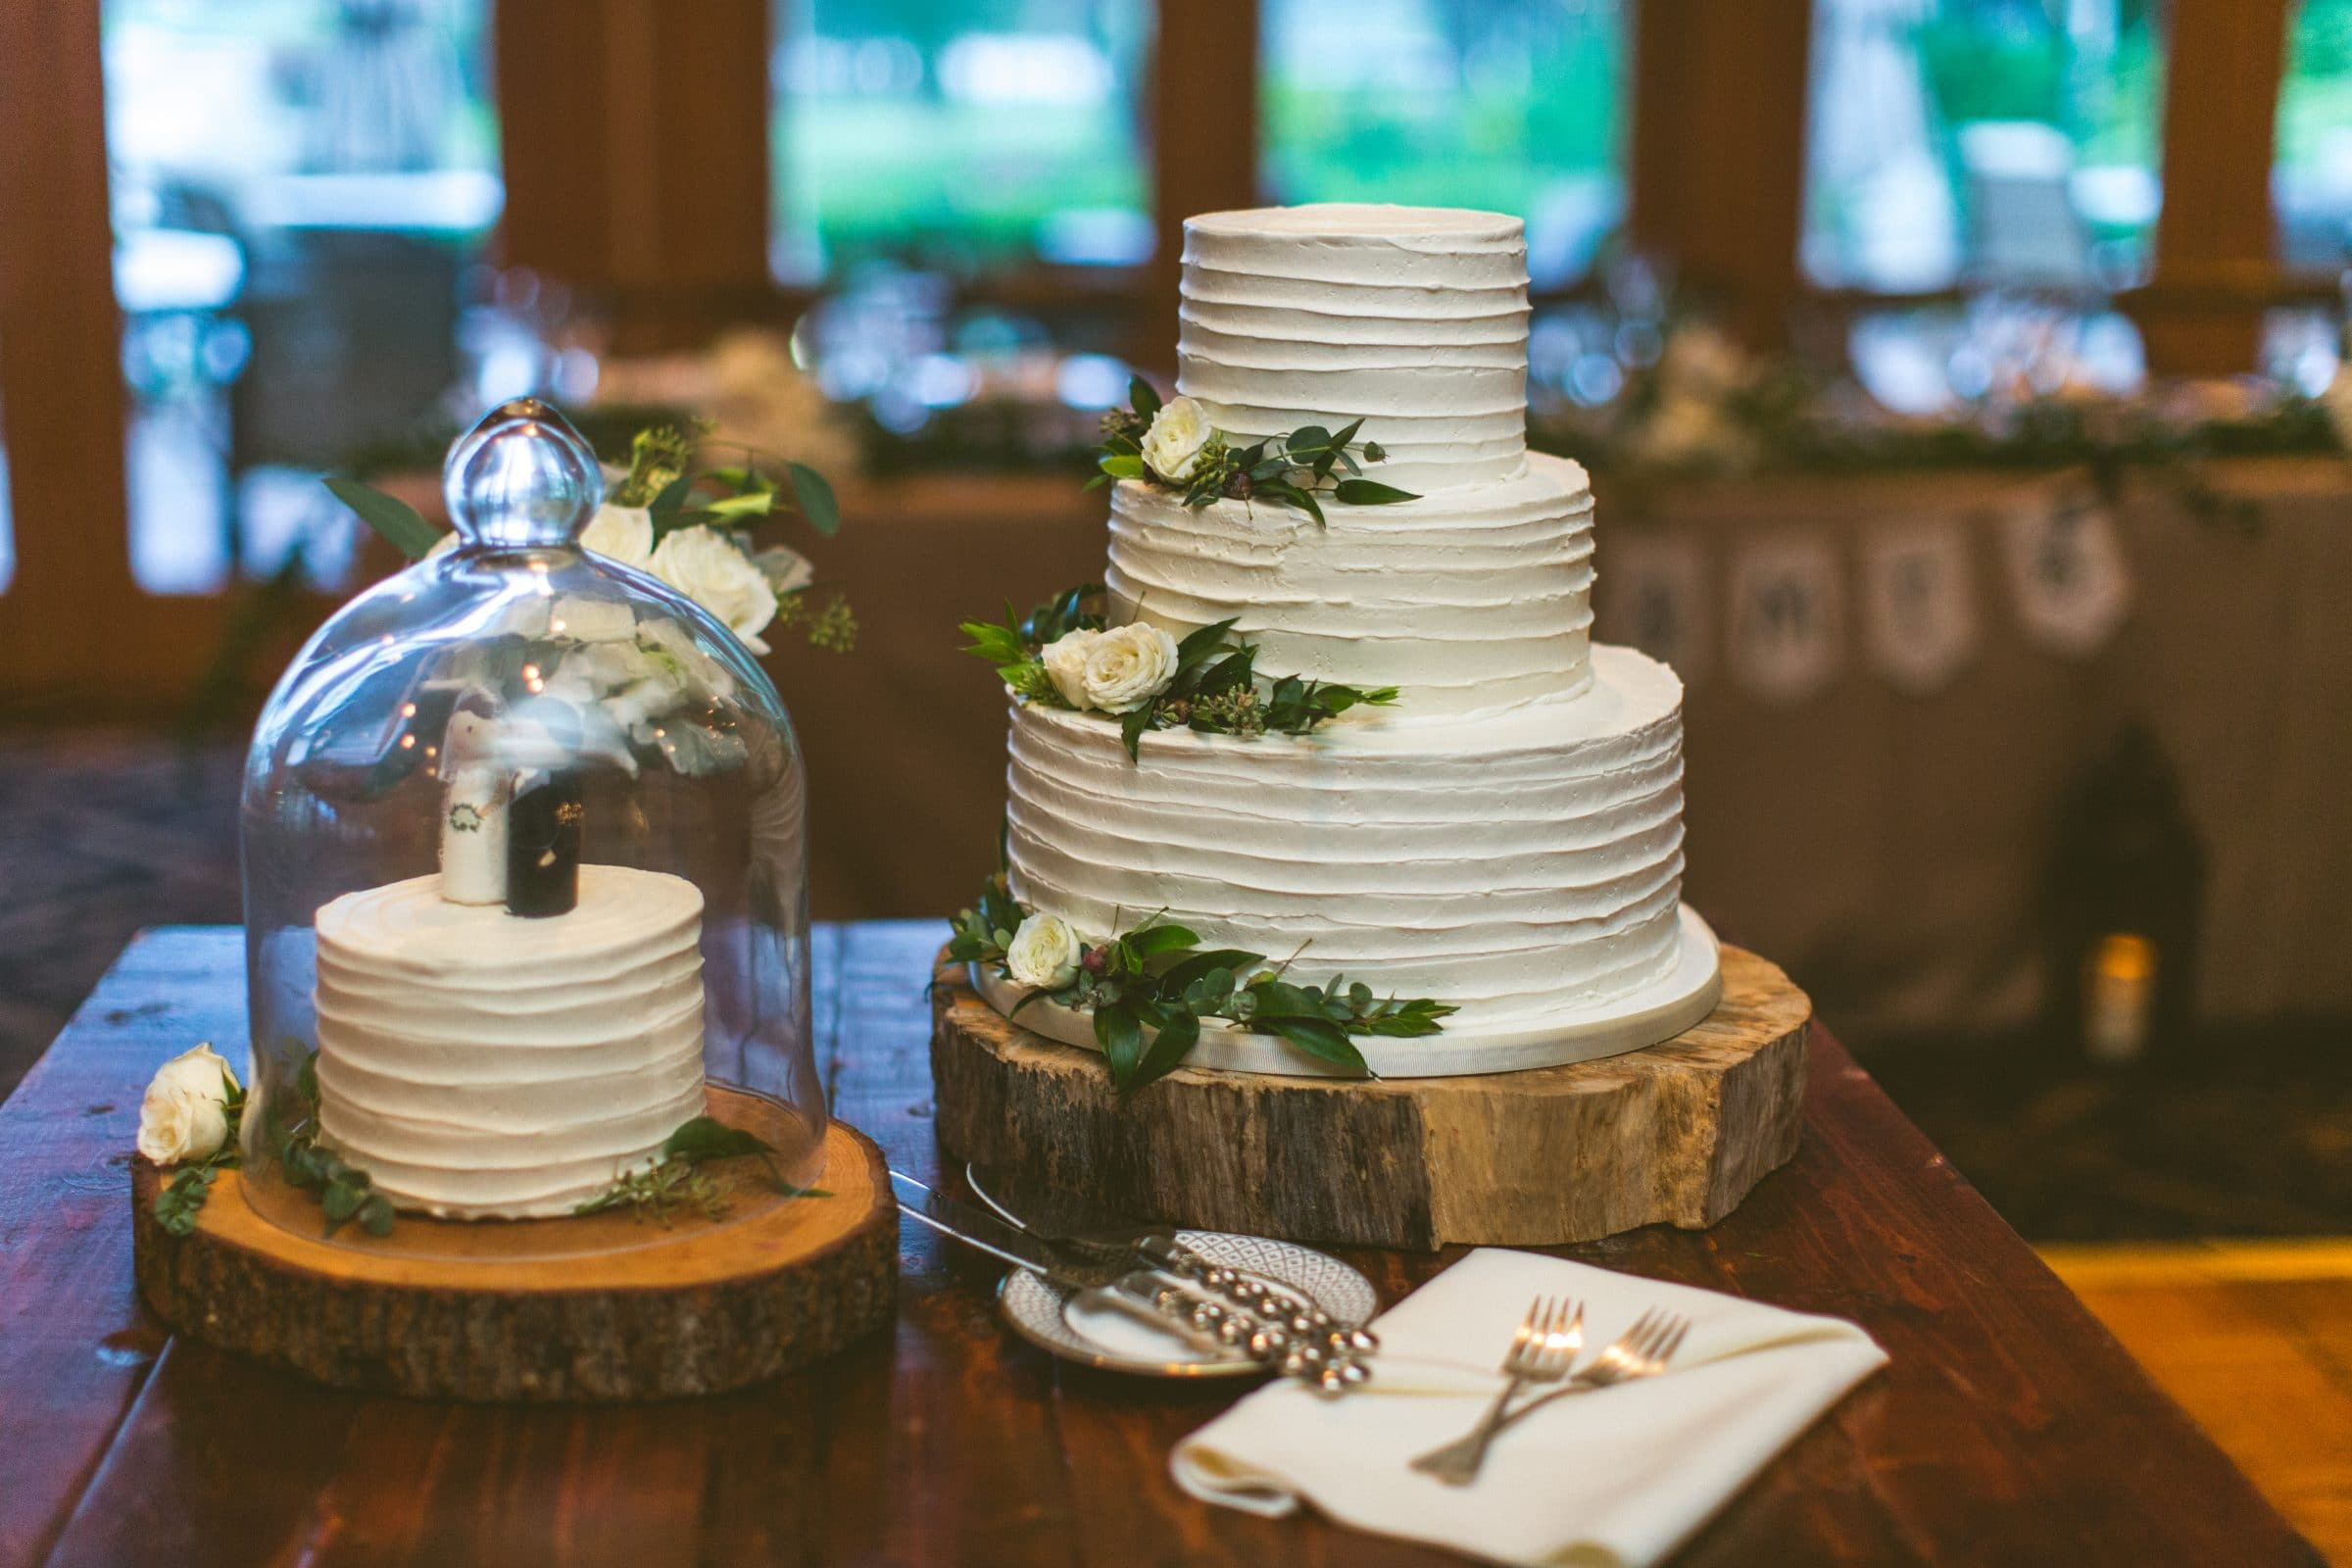 Simple ruffle wedding cake on rustic wooden stand